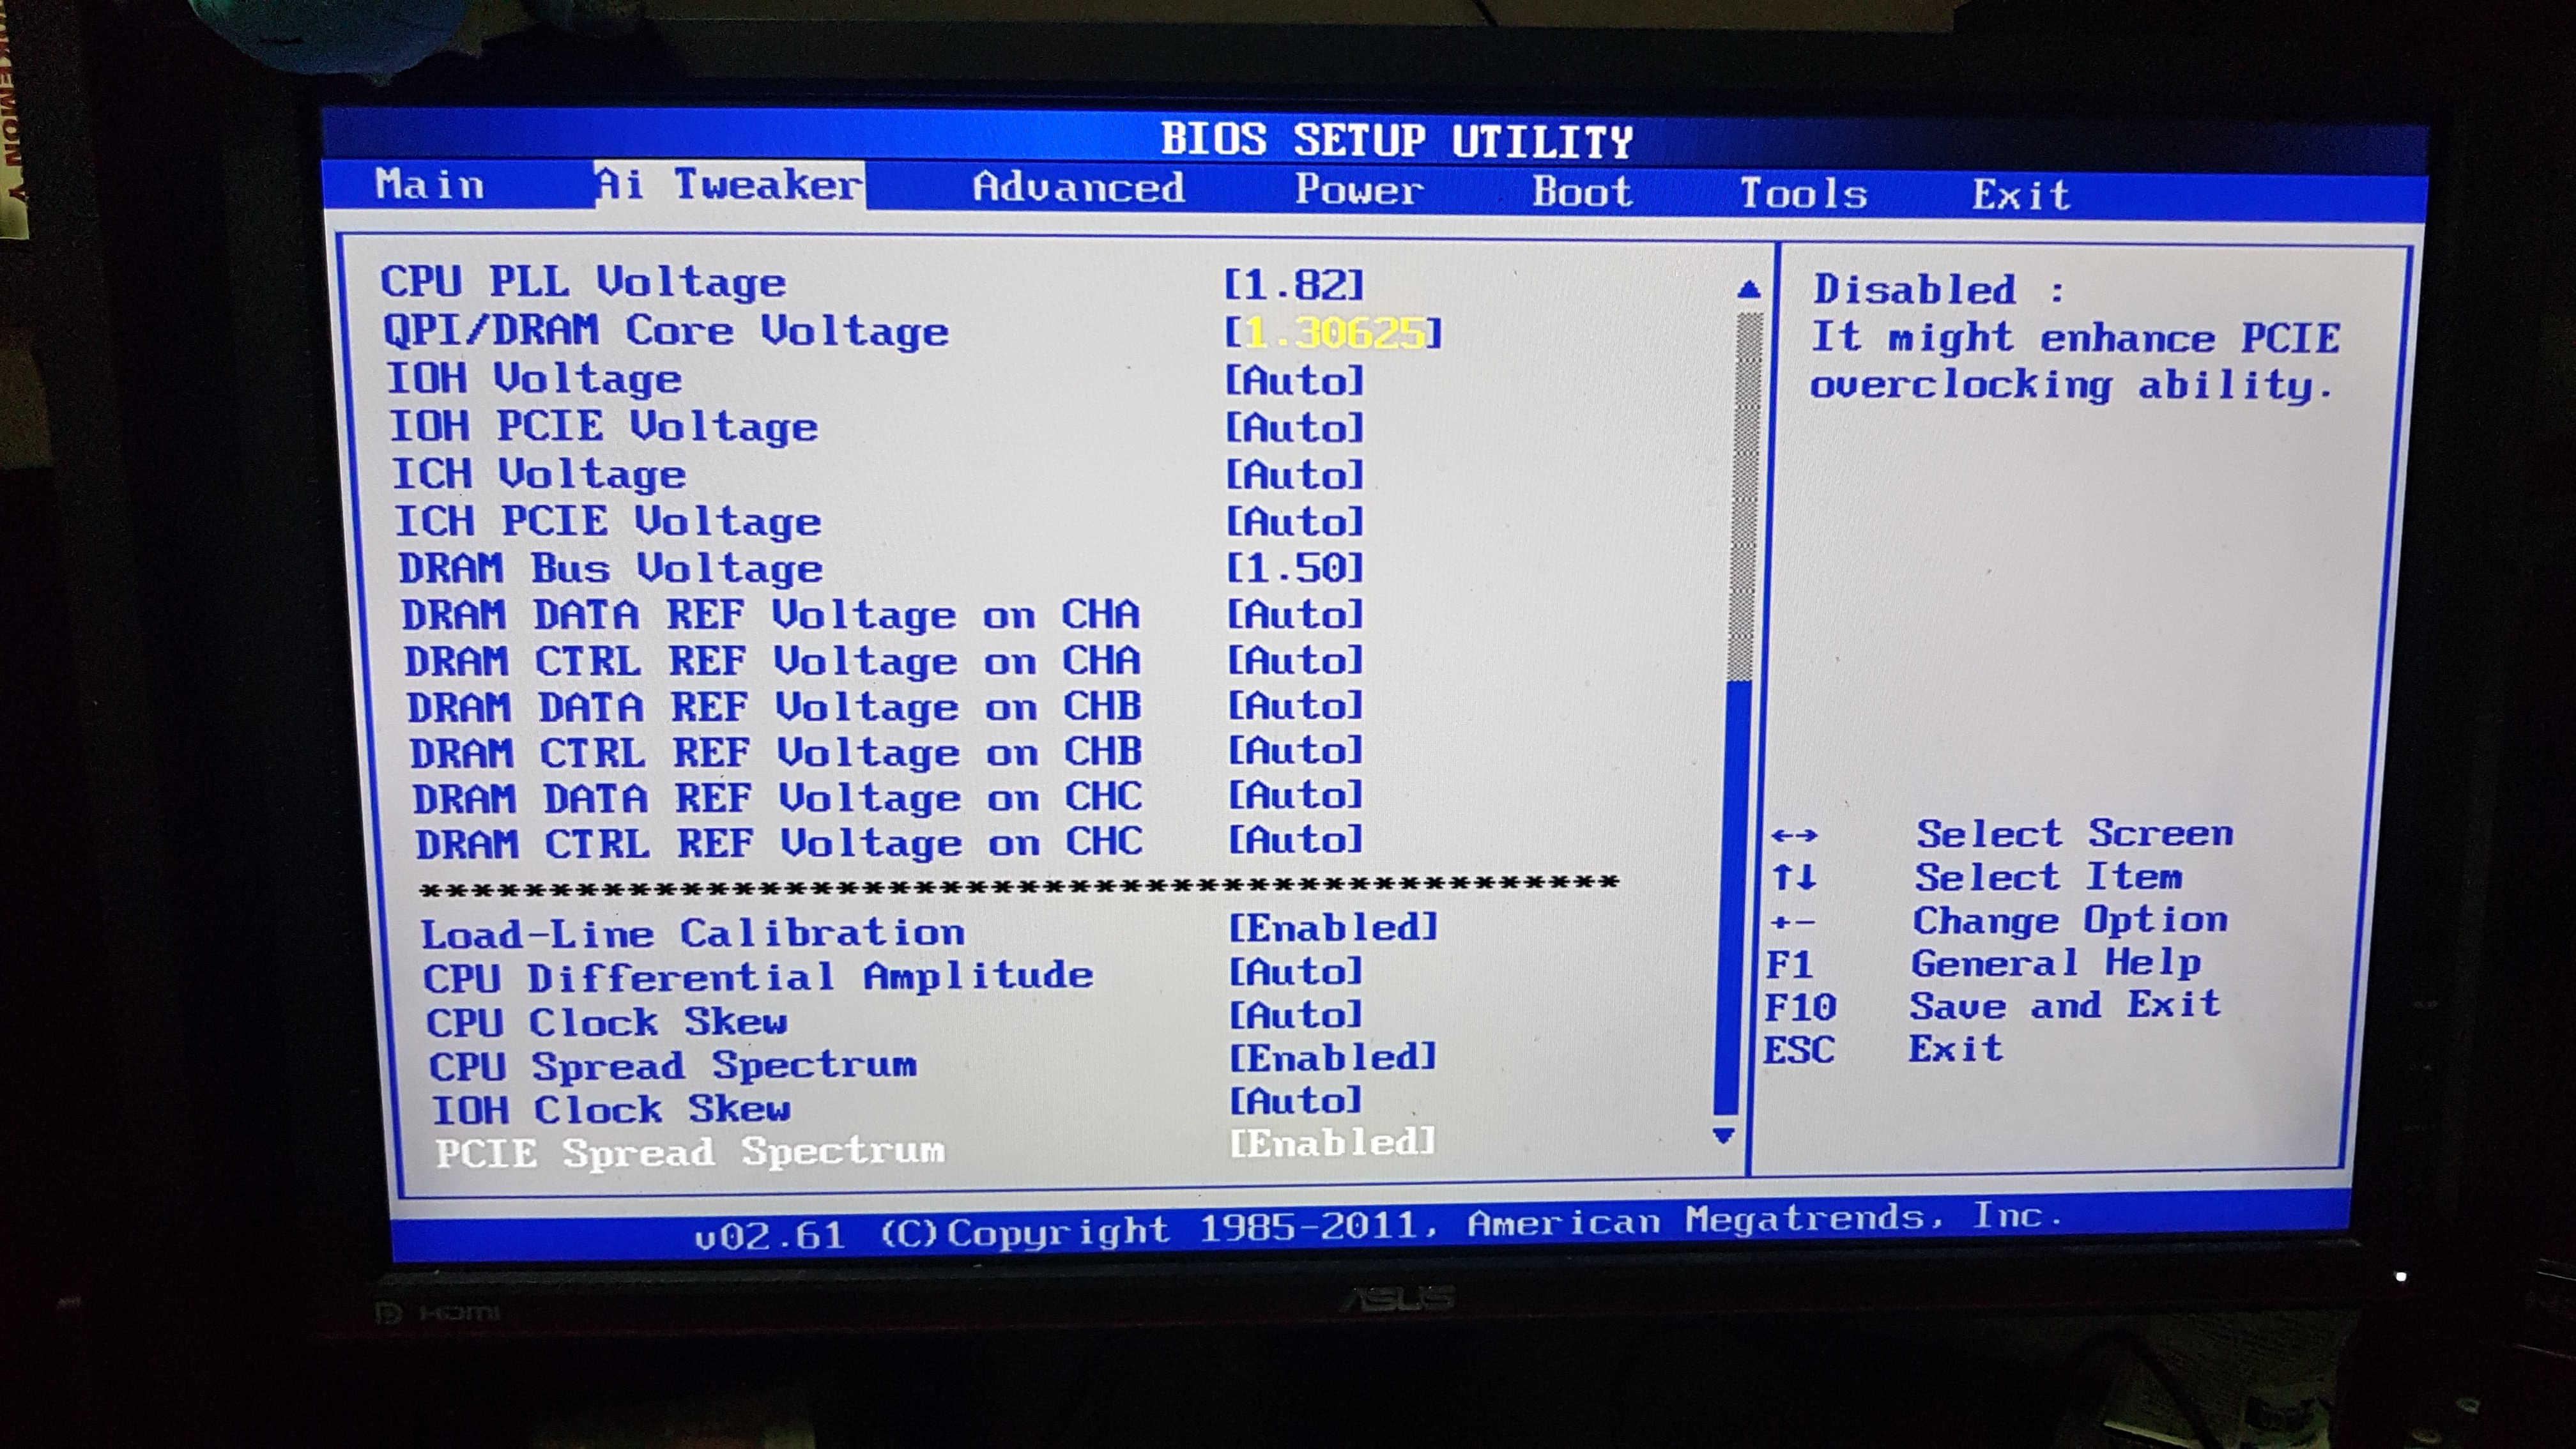 Official] - X58 Xeon Club - - Page 1286 - Overclock net - An